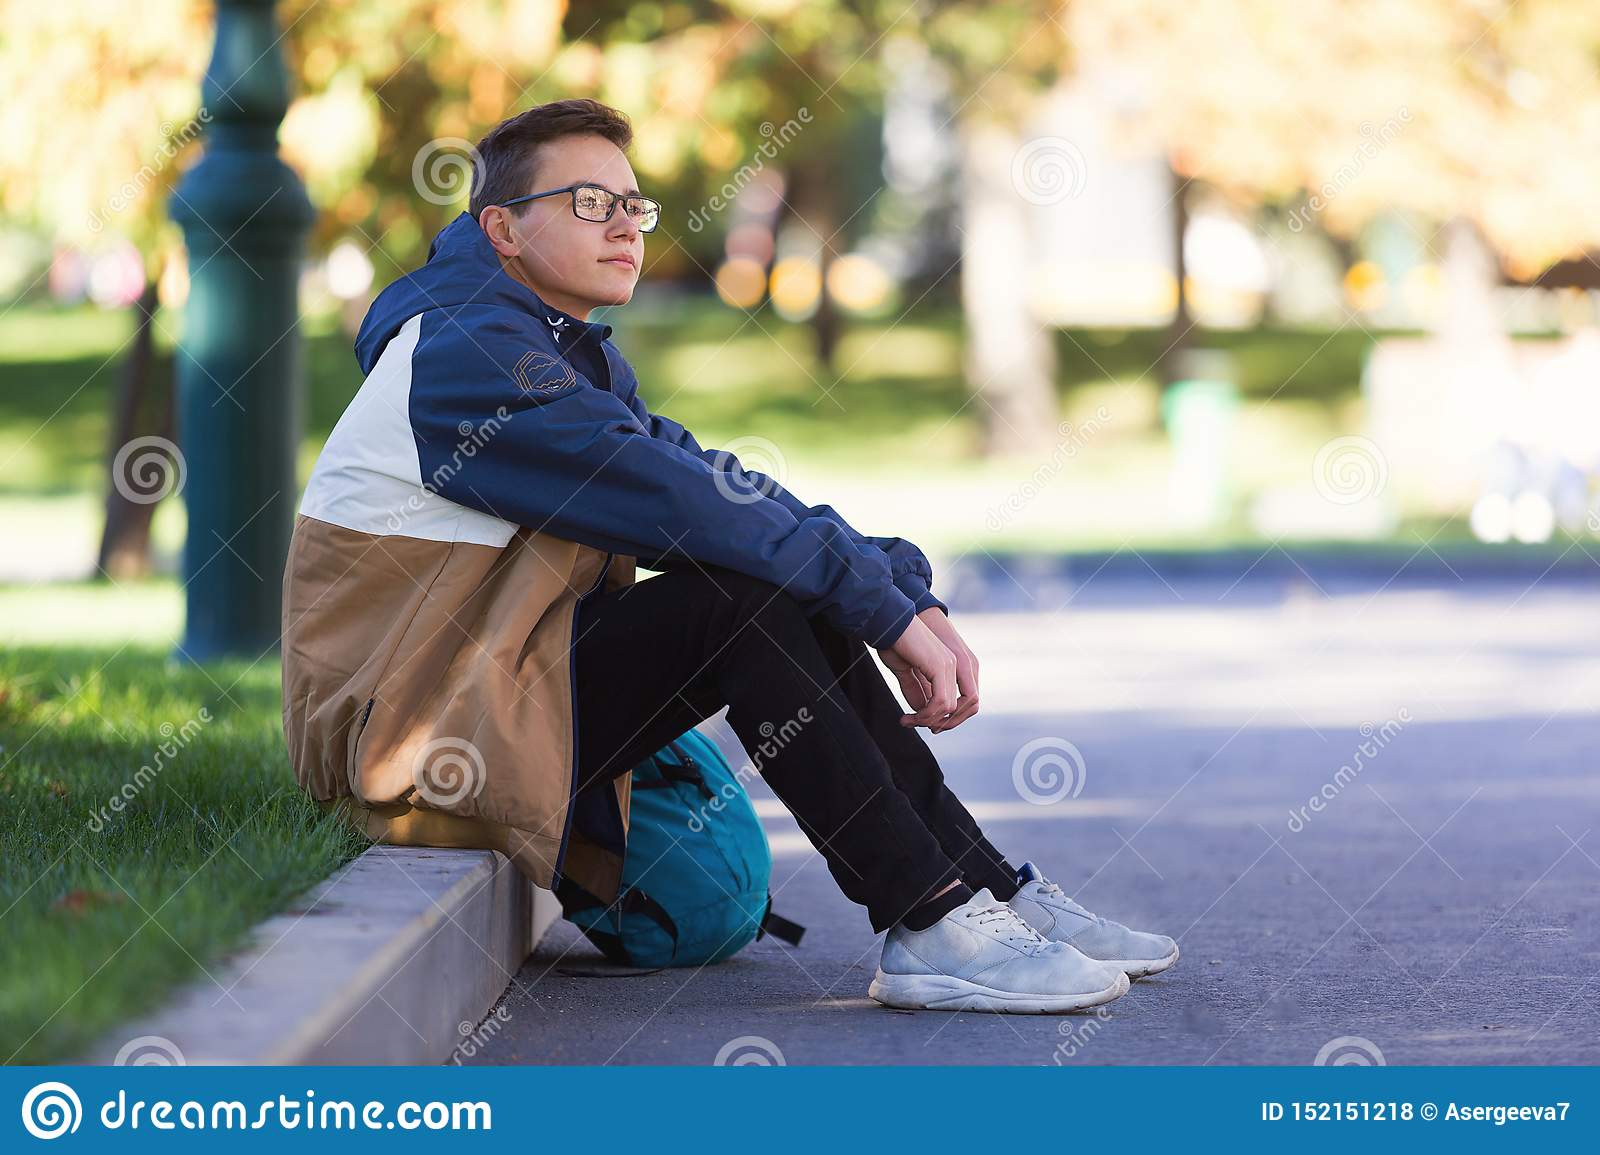 Cool guy sitting and relaxing outdoors during a break in class